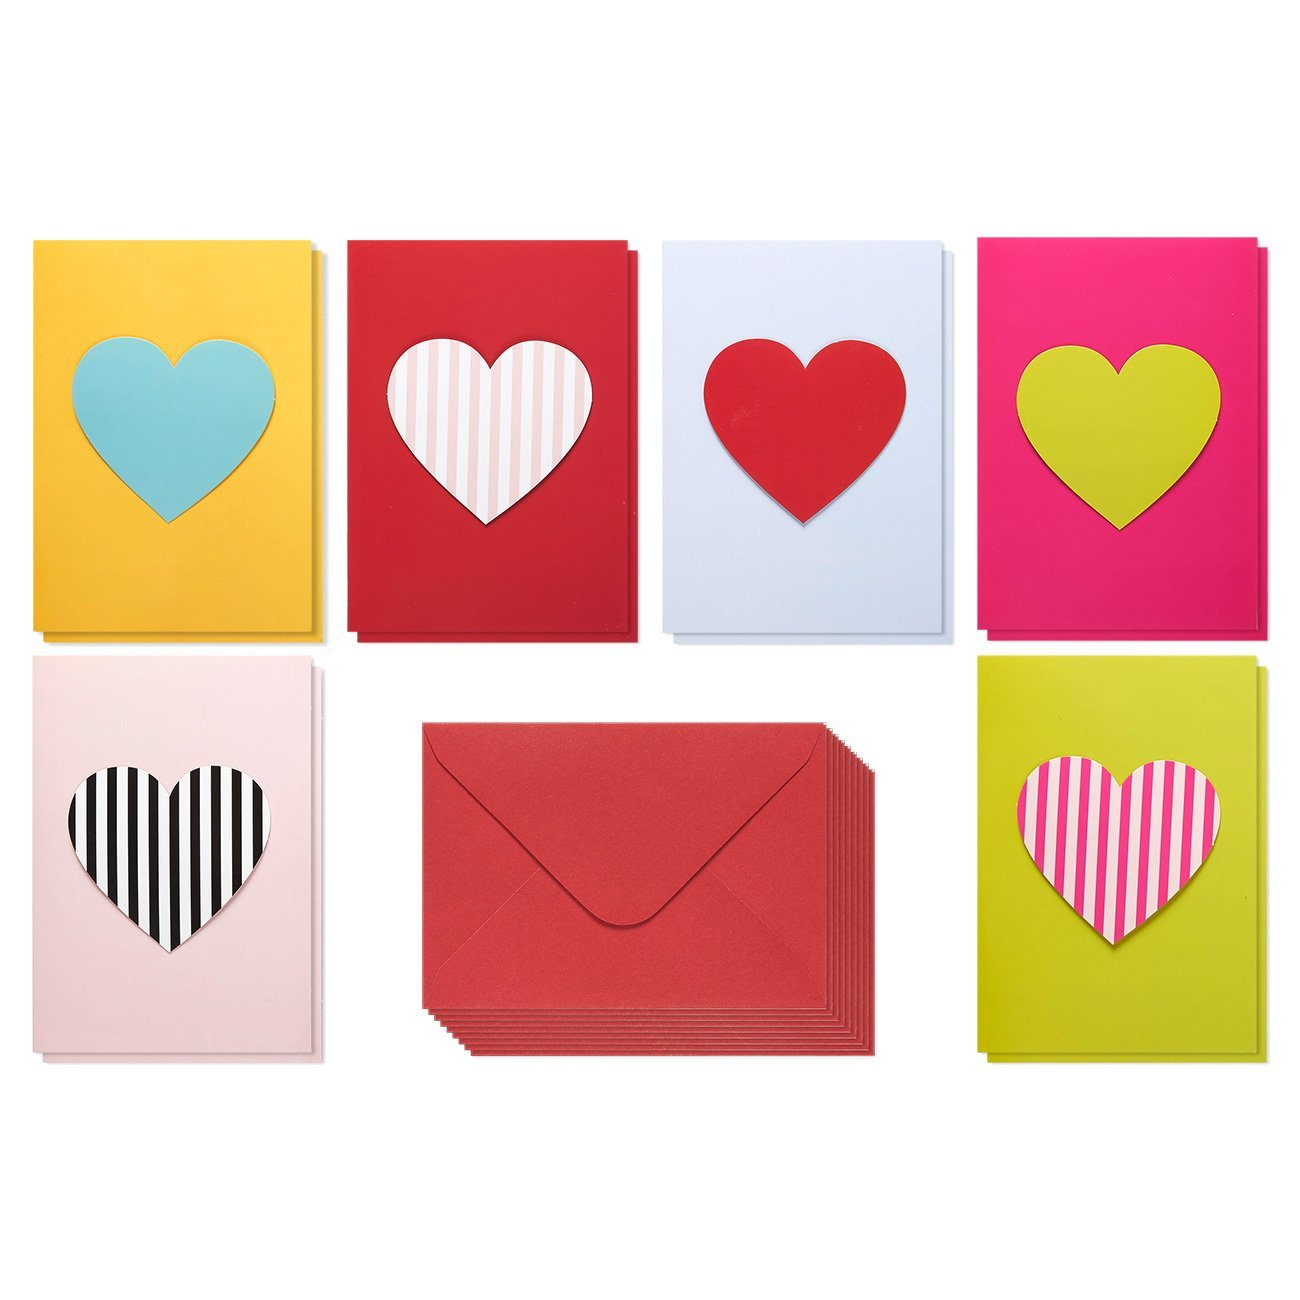 Cheap Valentine Cards For Boyfriend Handmade Find Valentine Cards